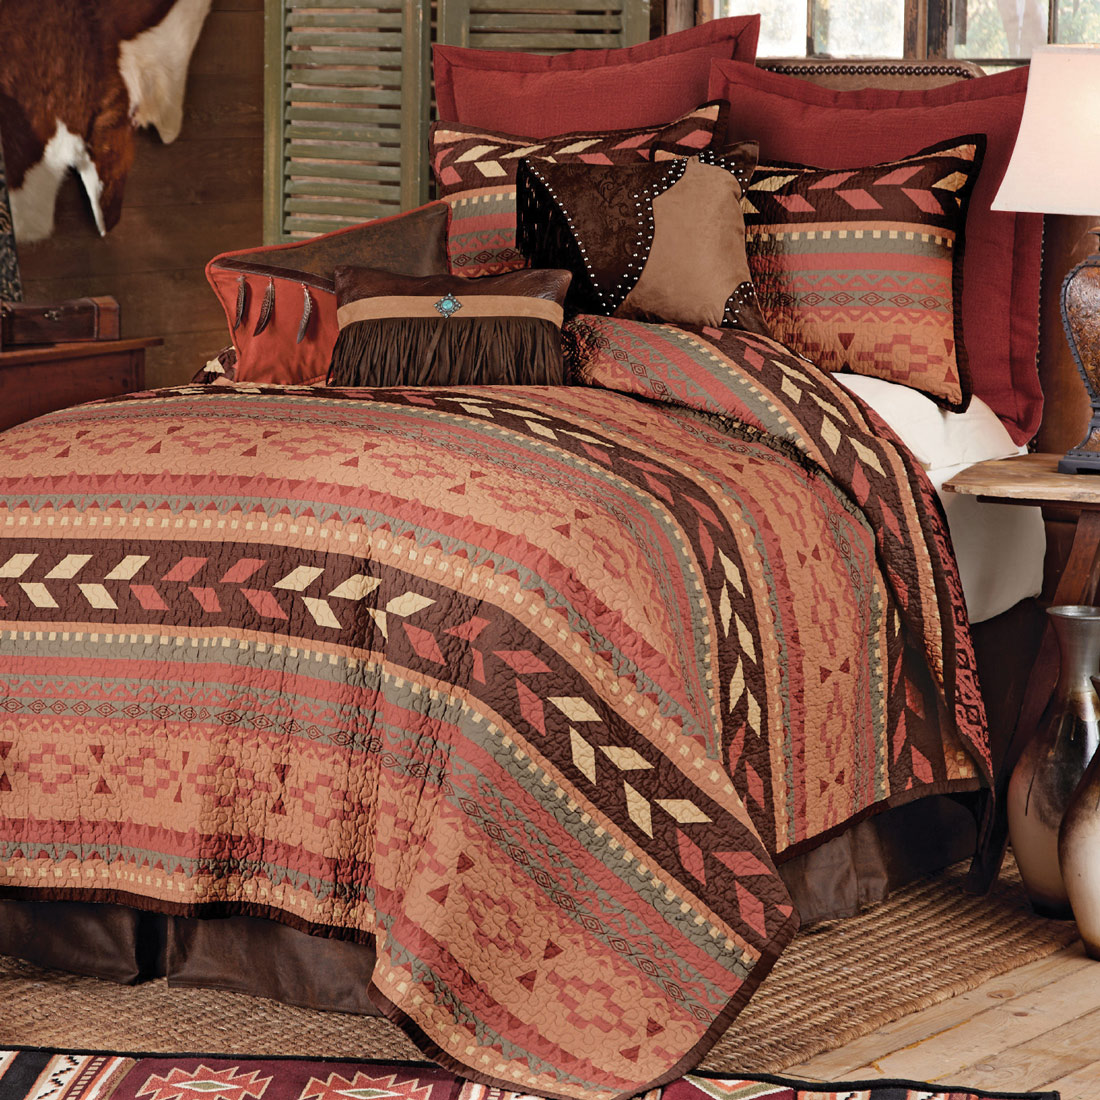 Lone Star Western Decor Broken arrow quilt bed set - king